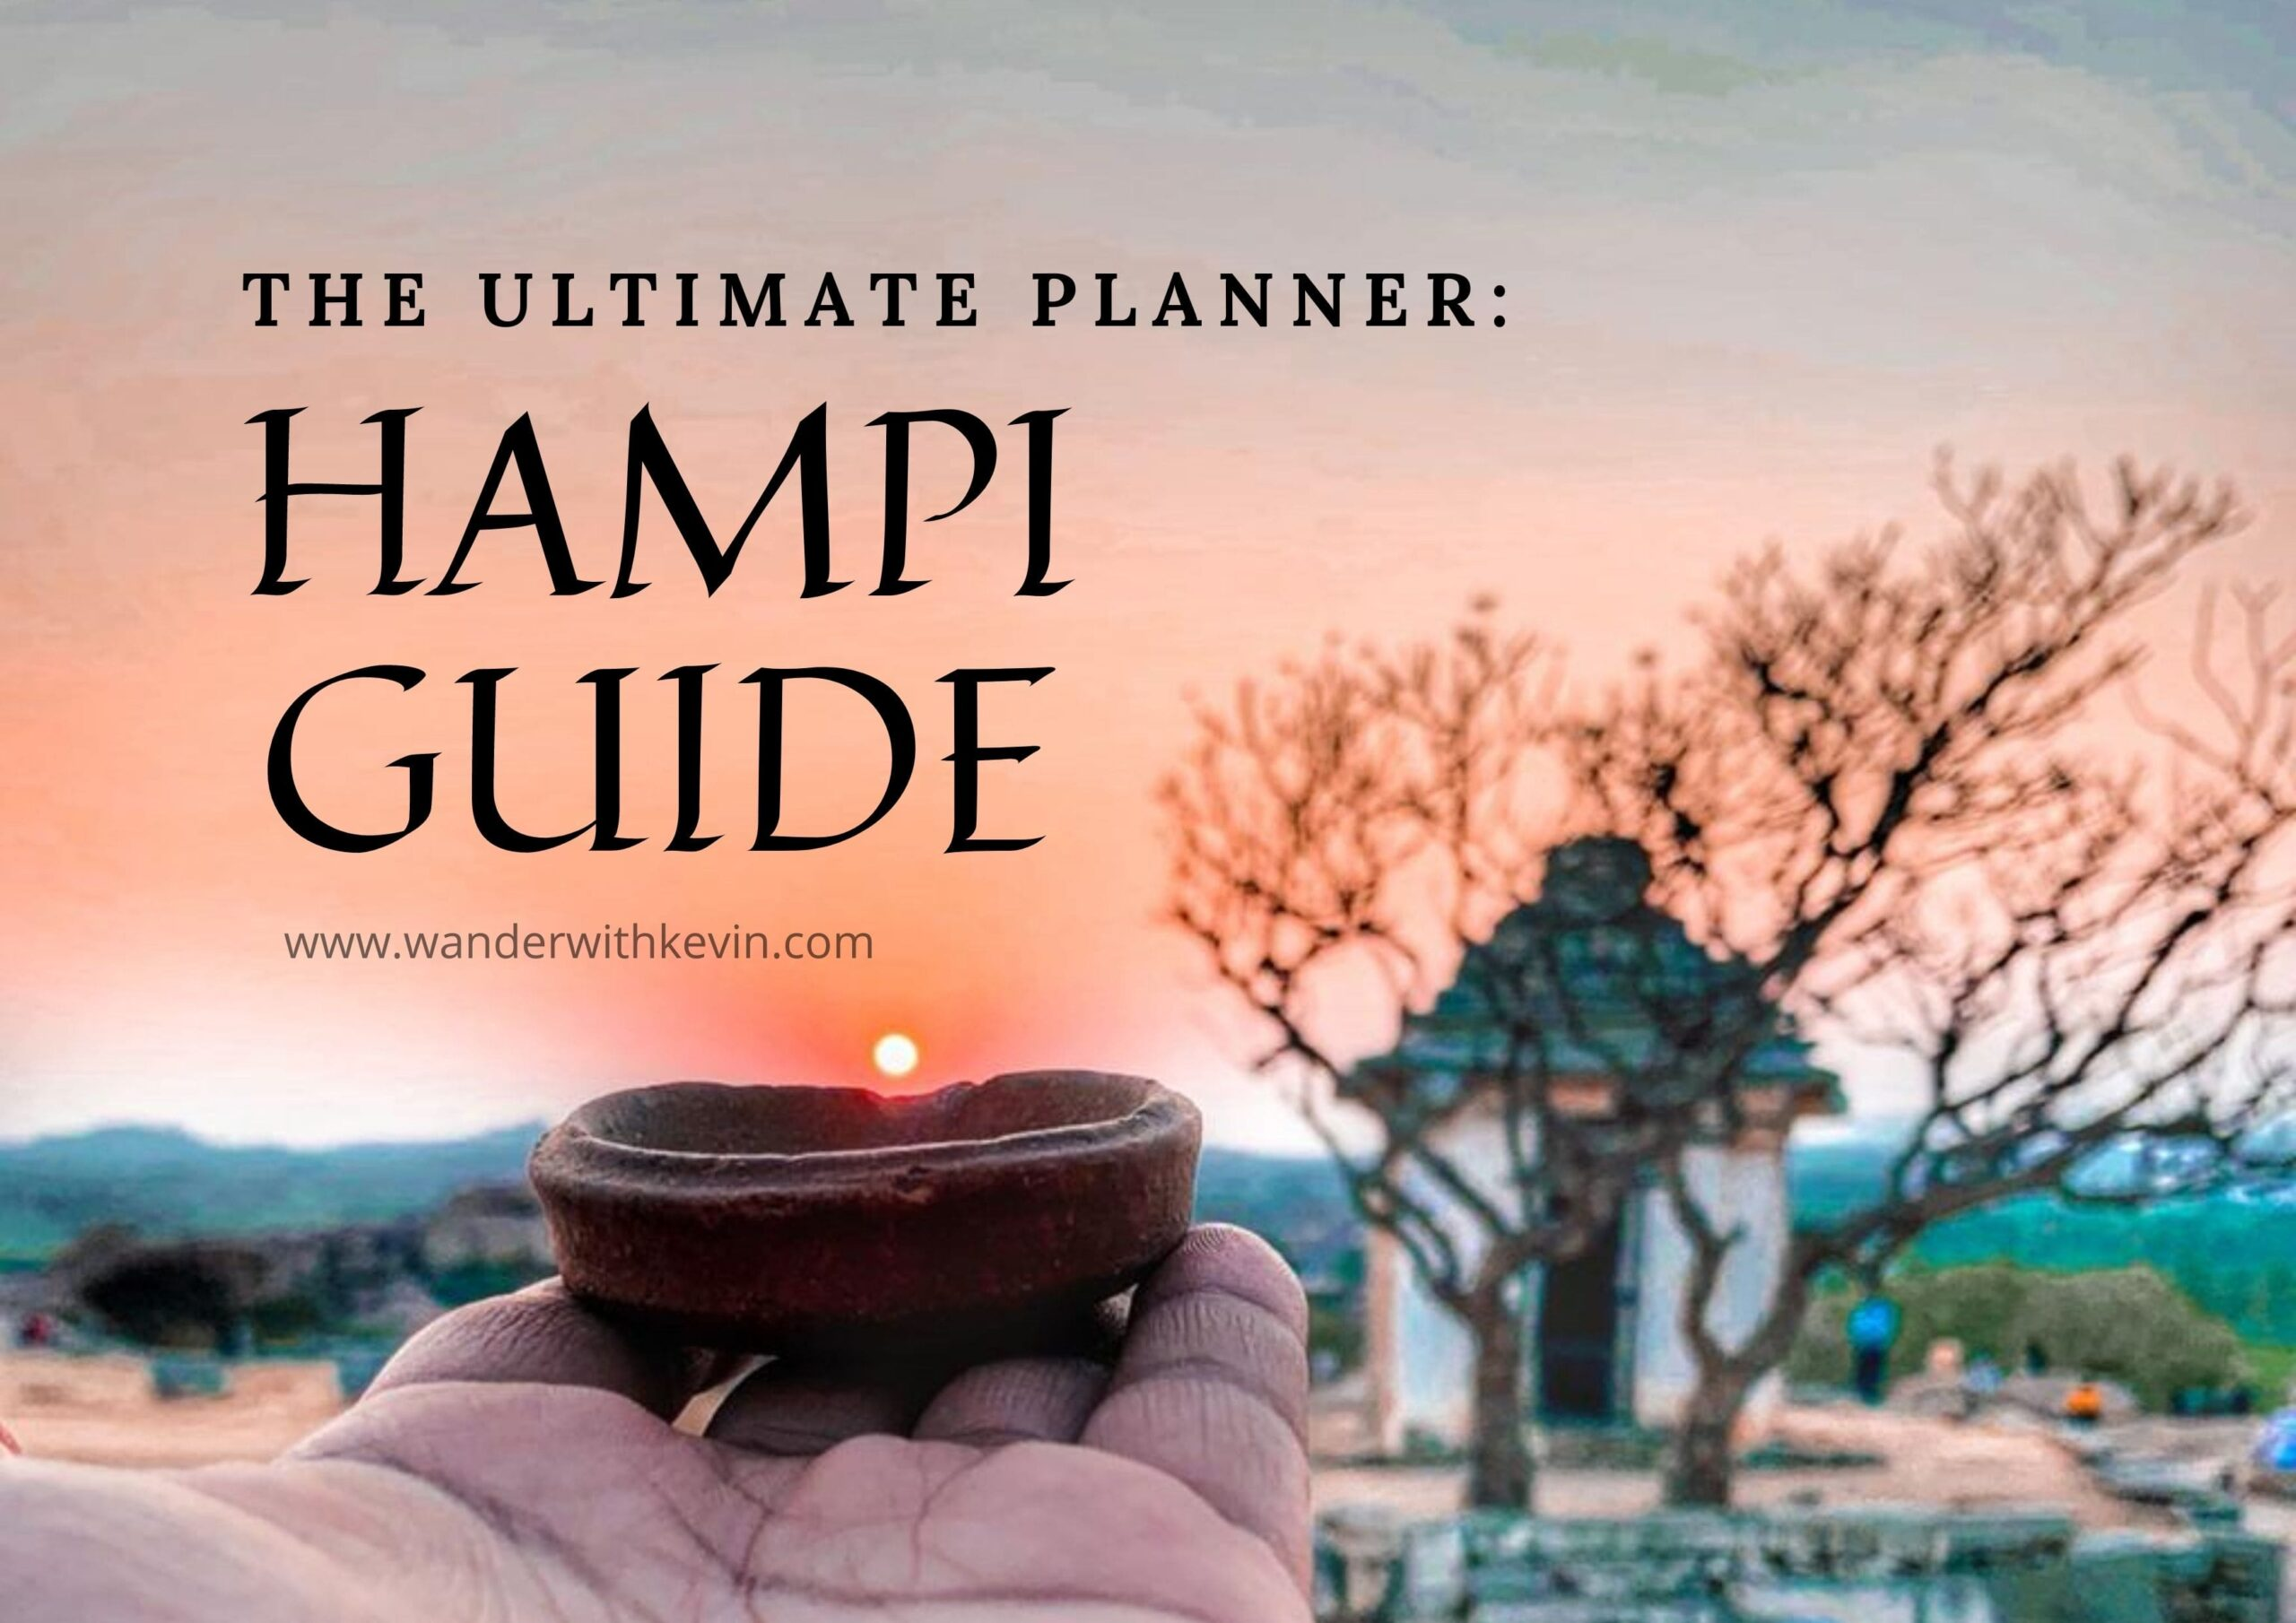 hampi travel guide by wander with kevin-min